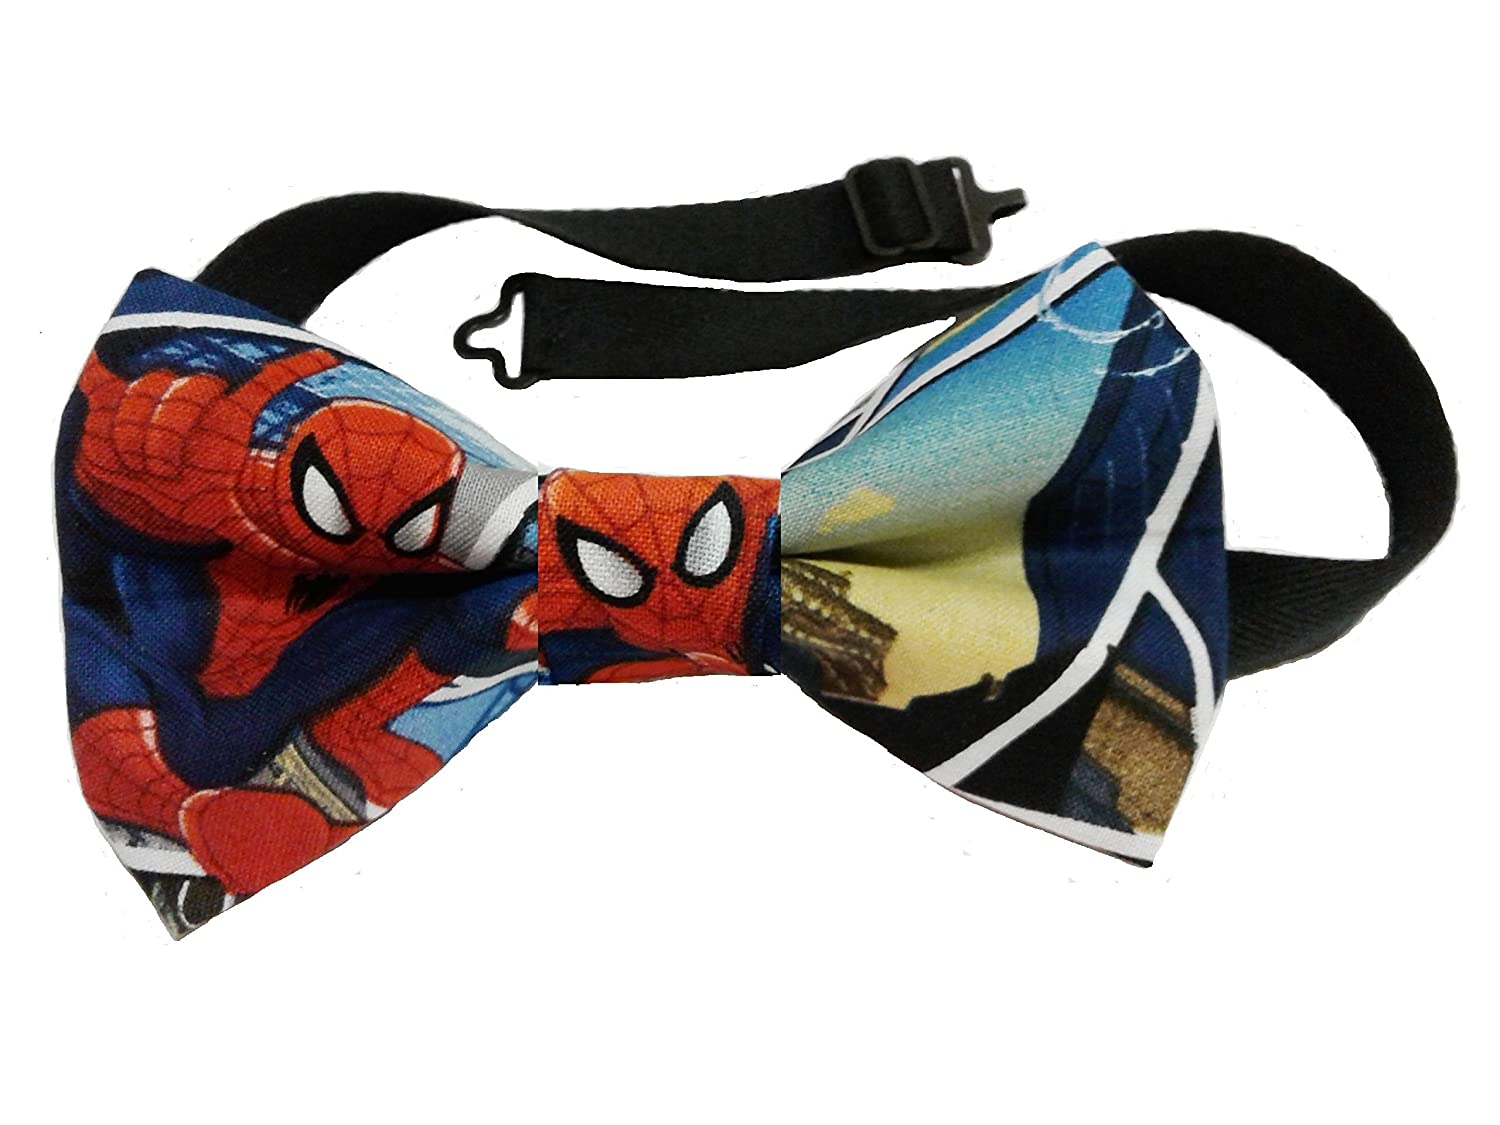 Spiderman Bow Tie Various Sizes Big and Tall, Adult, Children